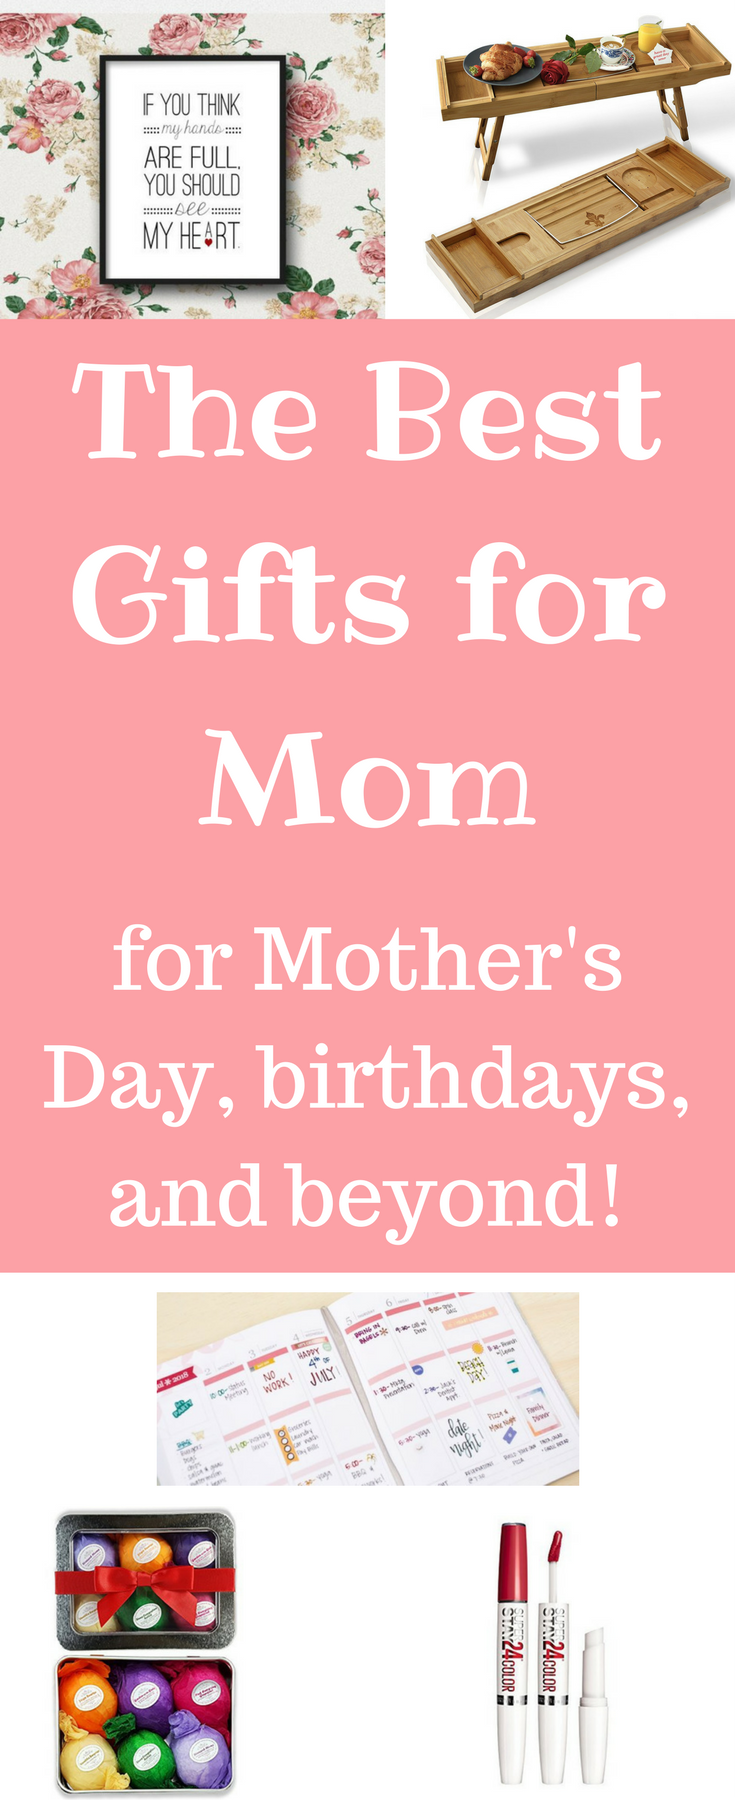 The best gifts for mom for mother 39 s day birthdays and for Great present for mom